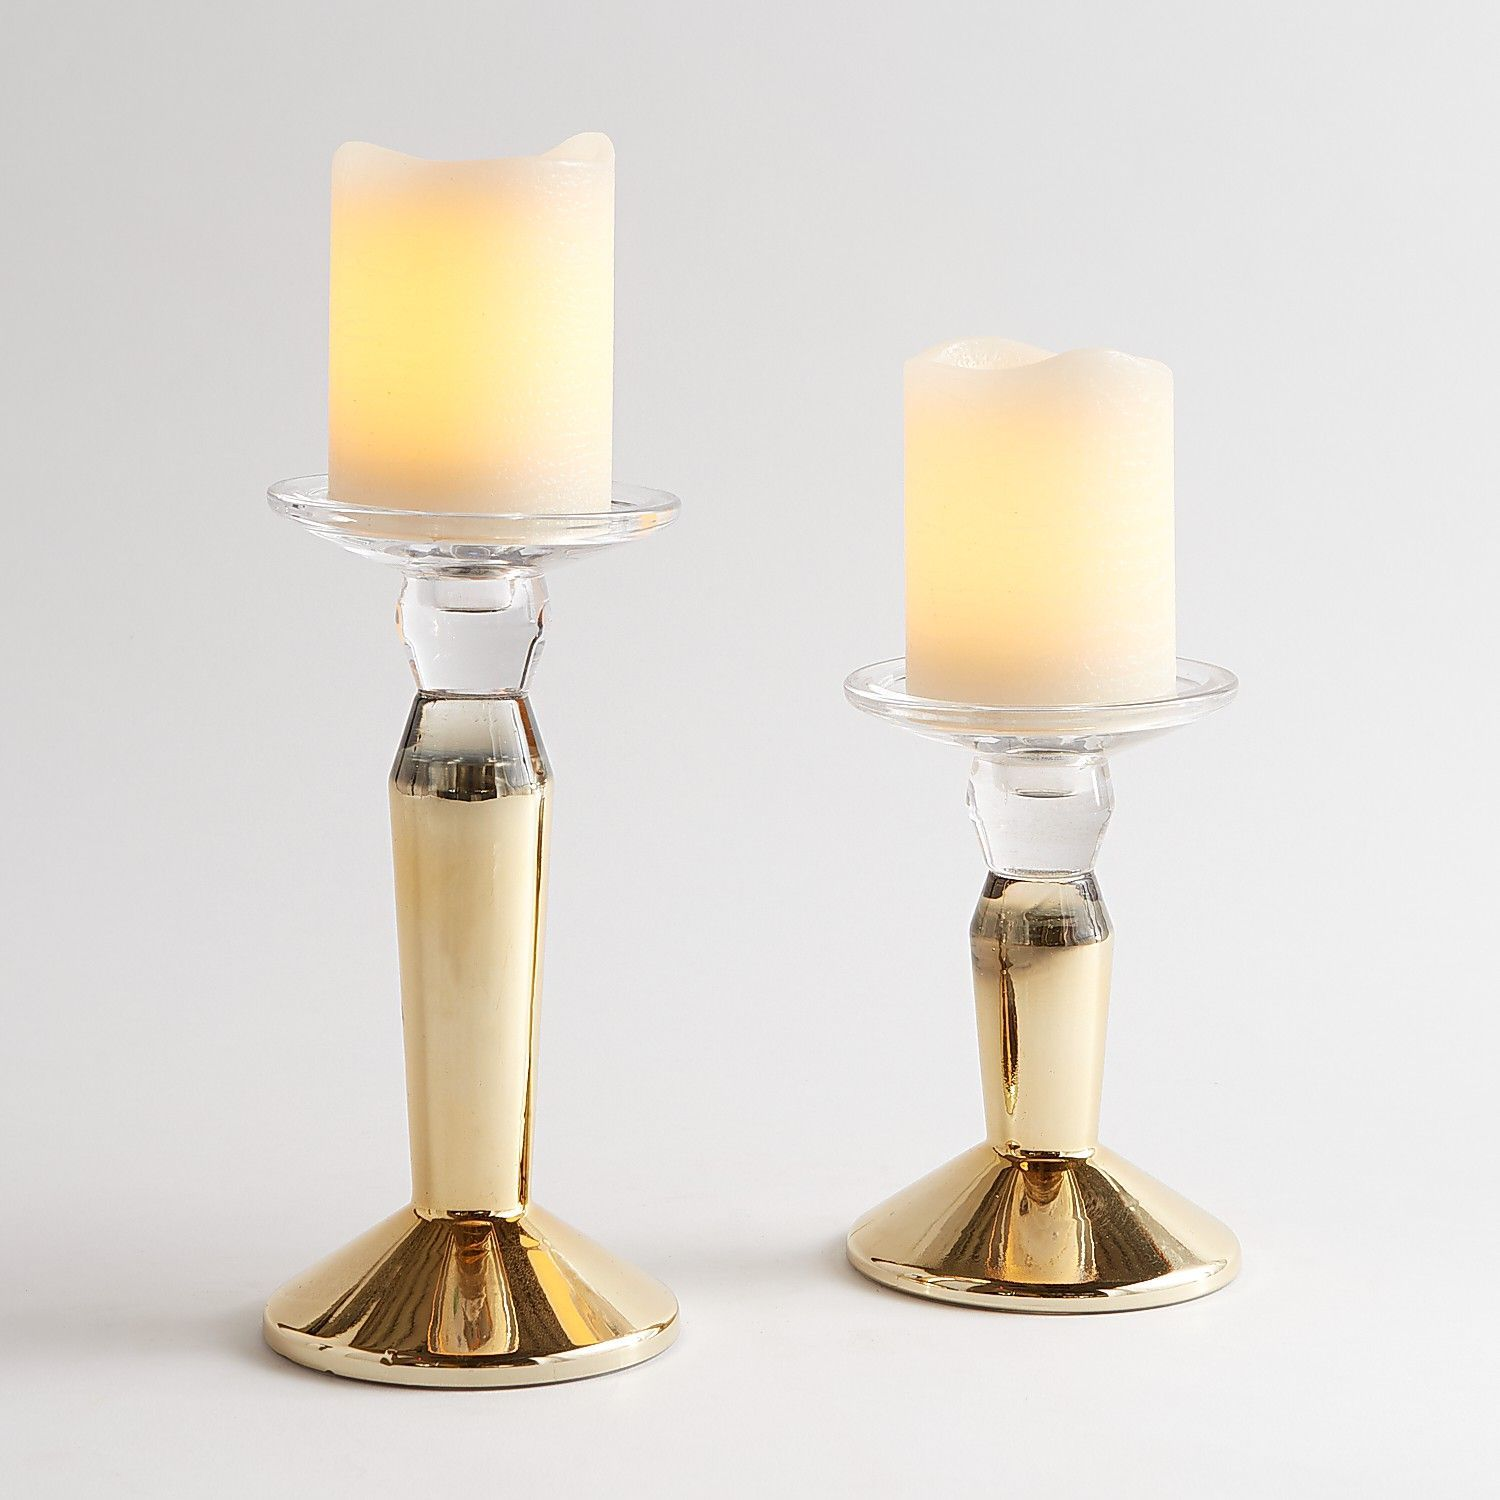 Gold Pillar Candle Holder - Pier 1 Imports